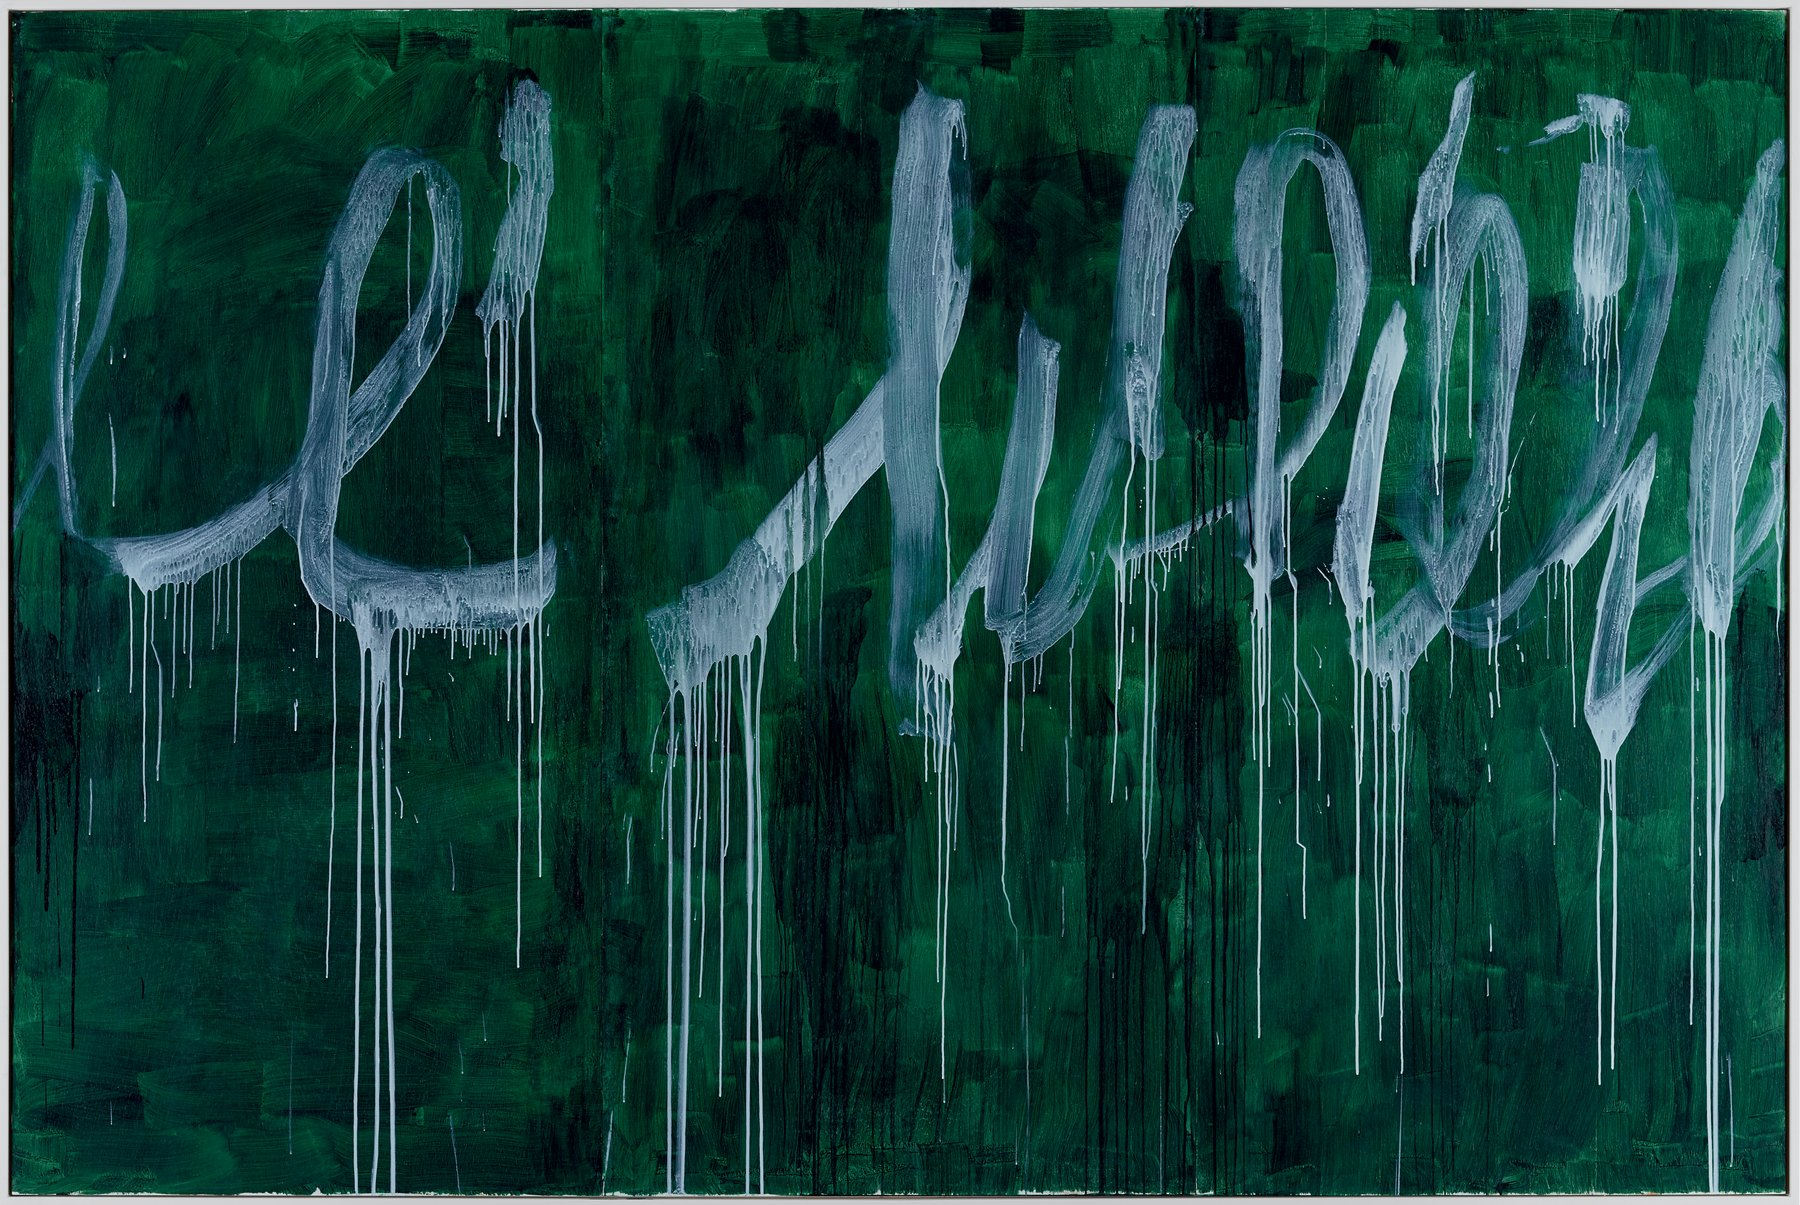 Forest green canvas painted with scrawling, dripping, white loops